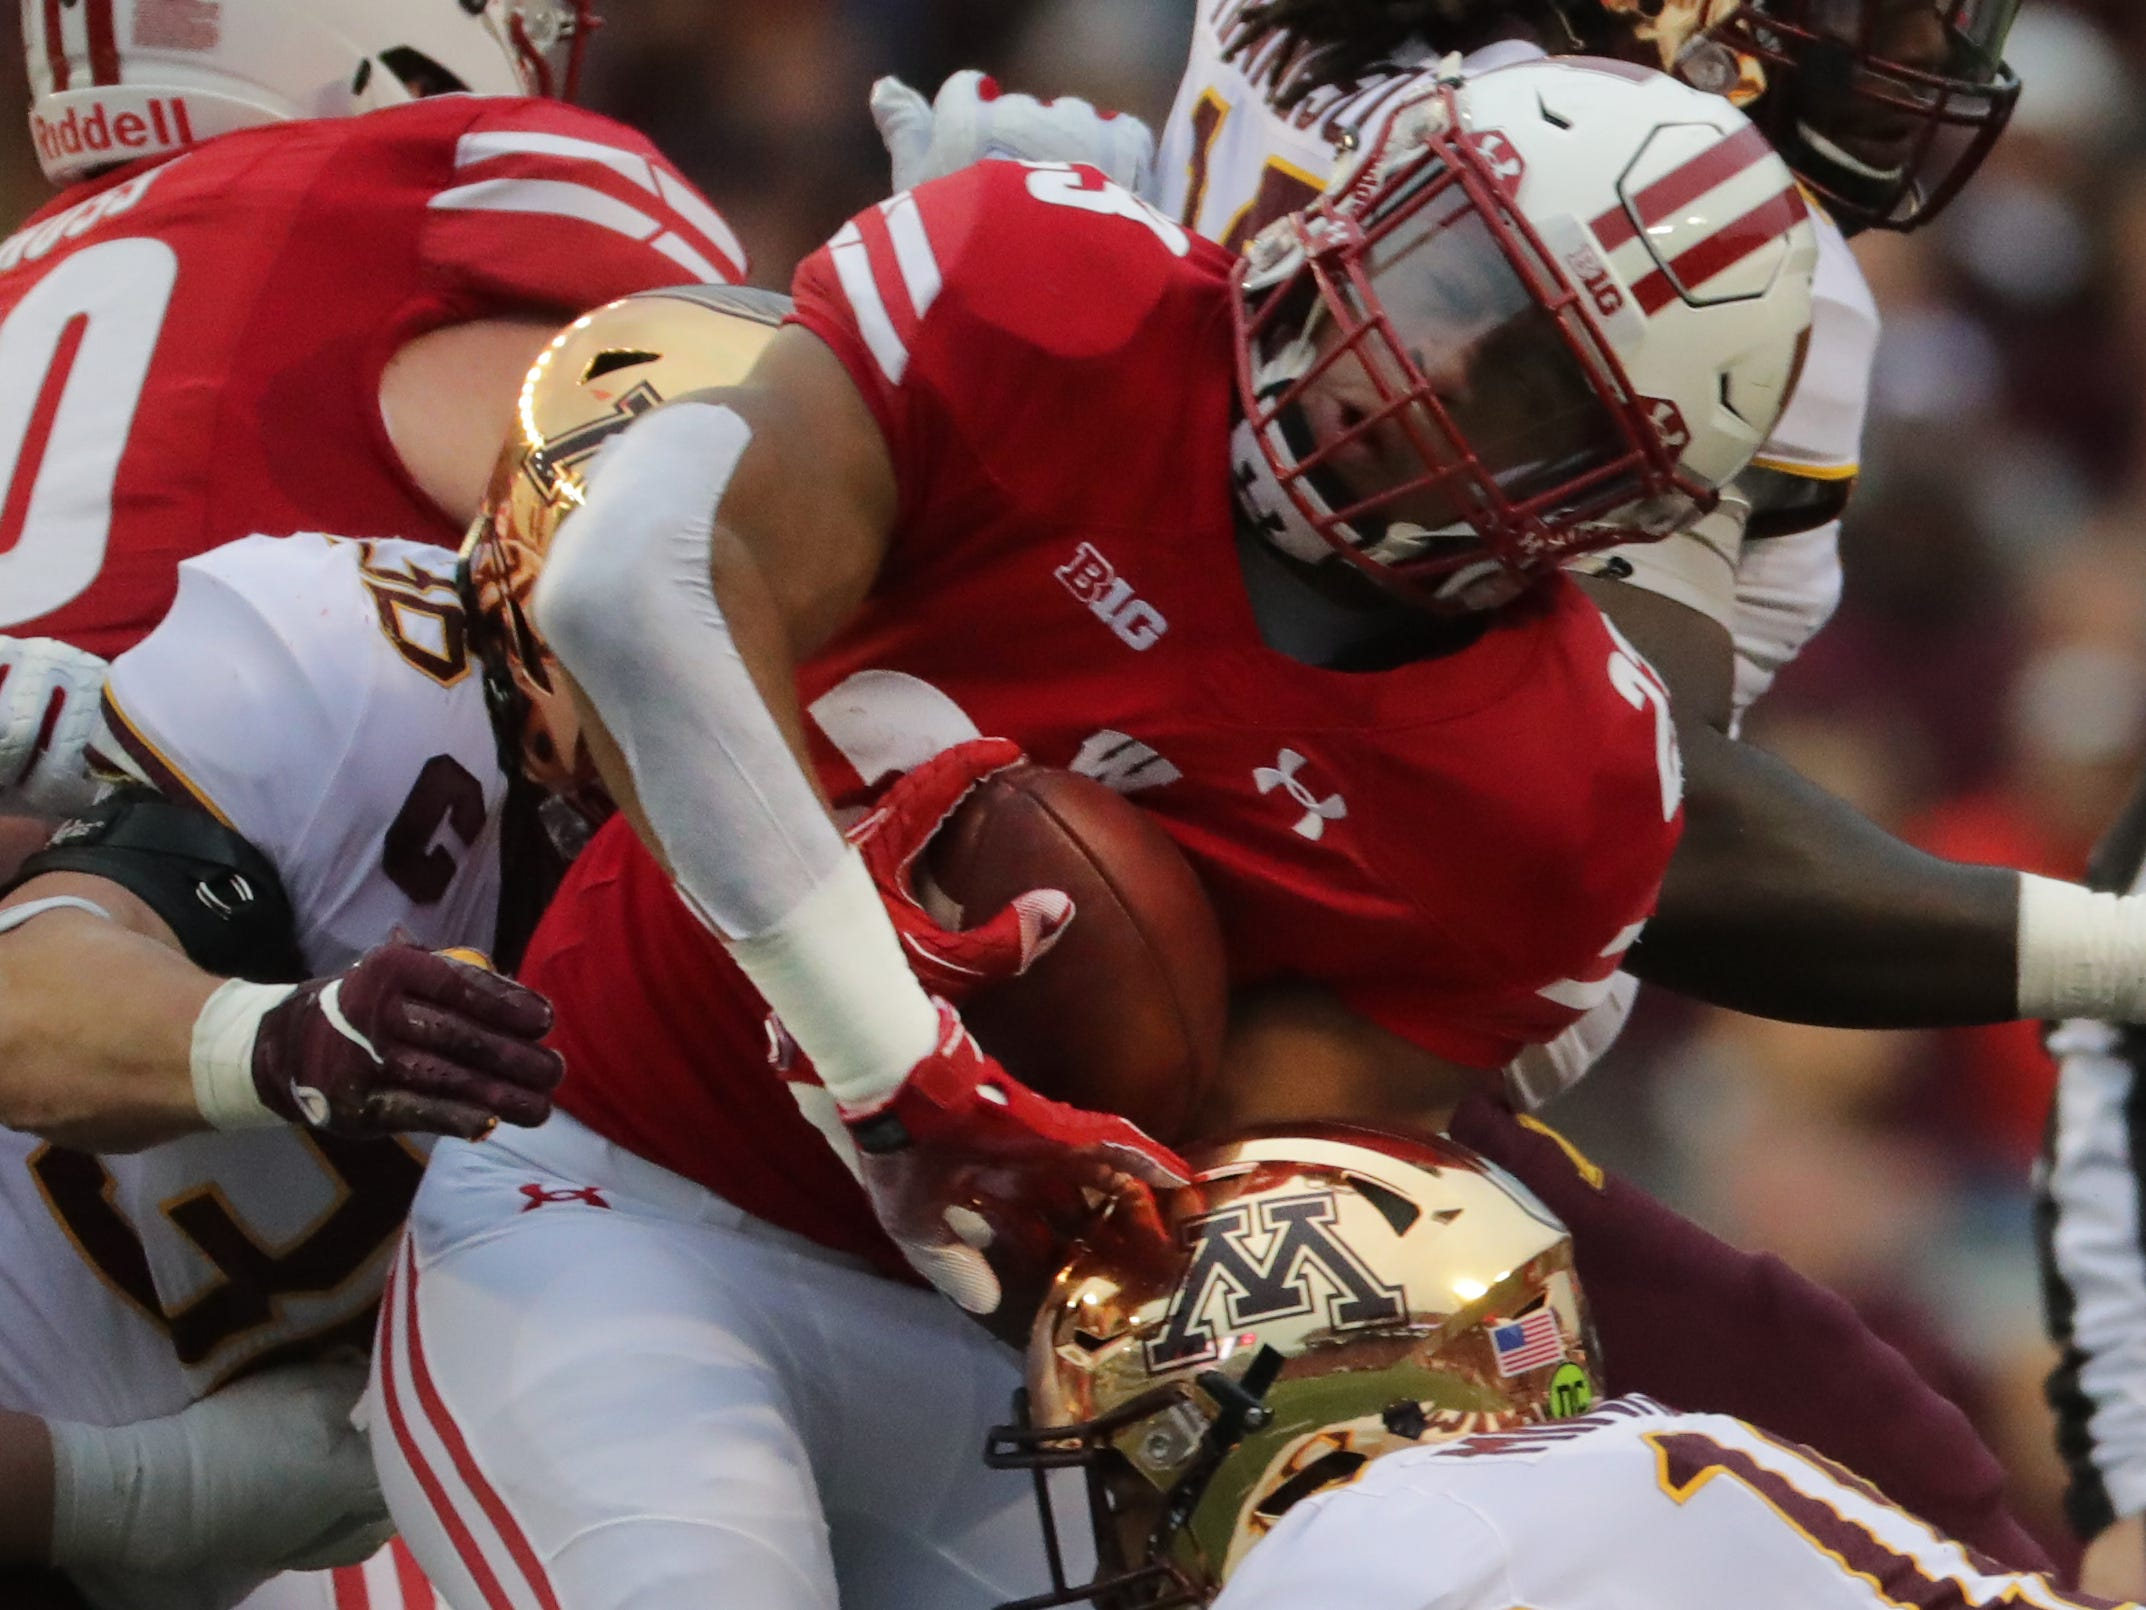 Wisconsin running back Jonathan Taylor  is stuffed at the line of scrimmage by Minnesota's defense during the first quarter Saturday.